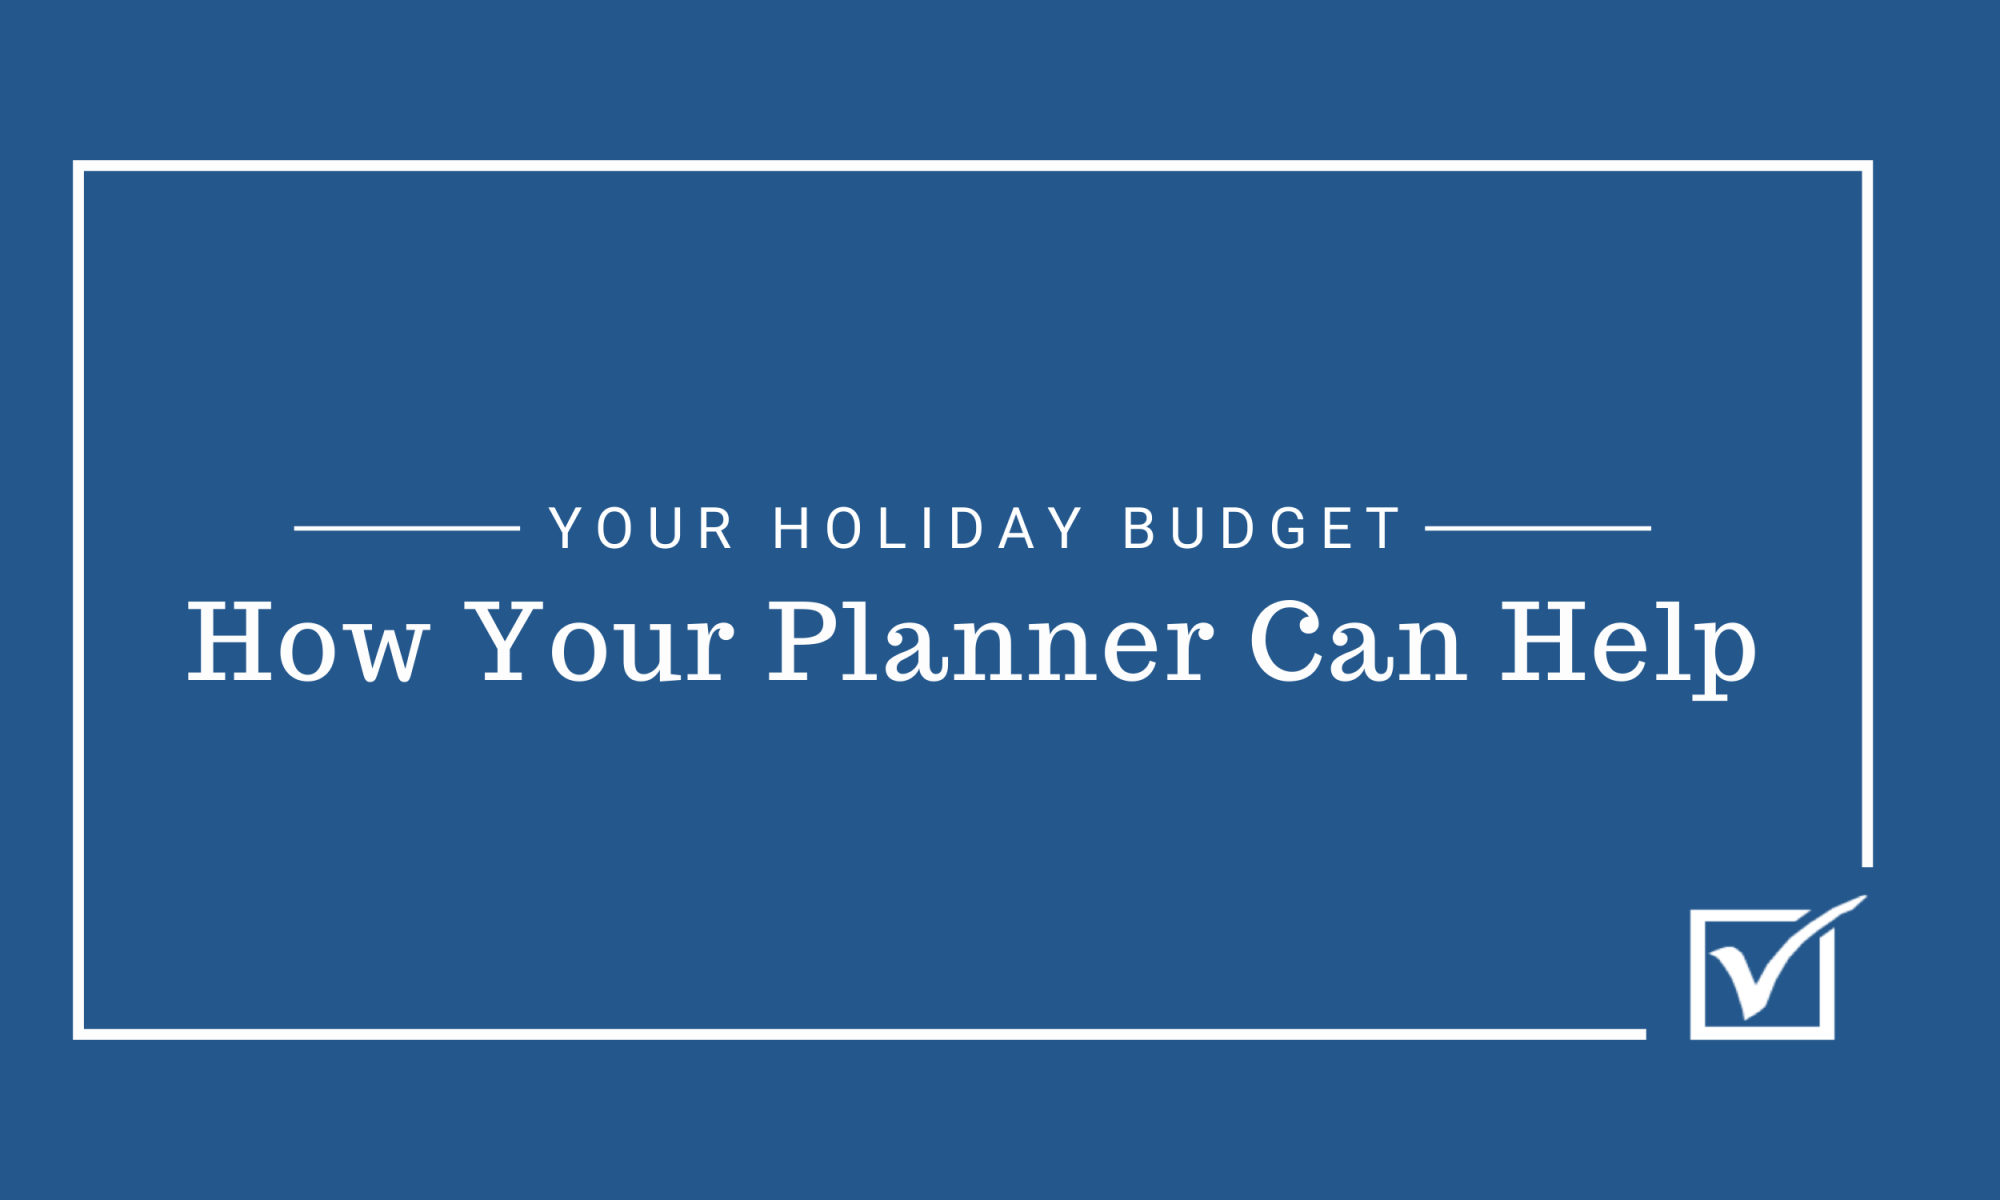 You Holiday Budget - How your planner can help